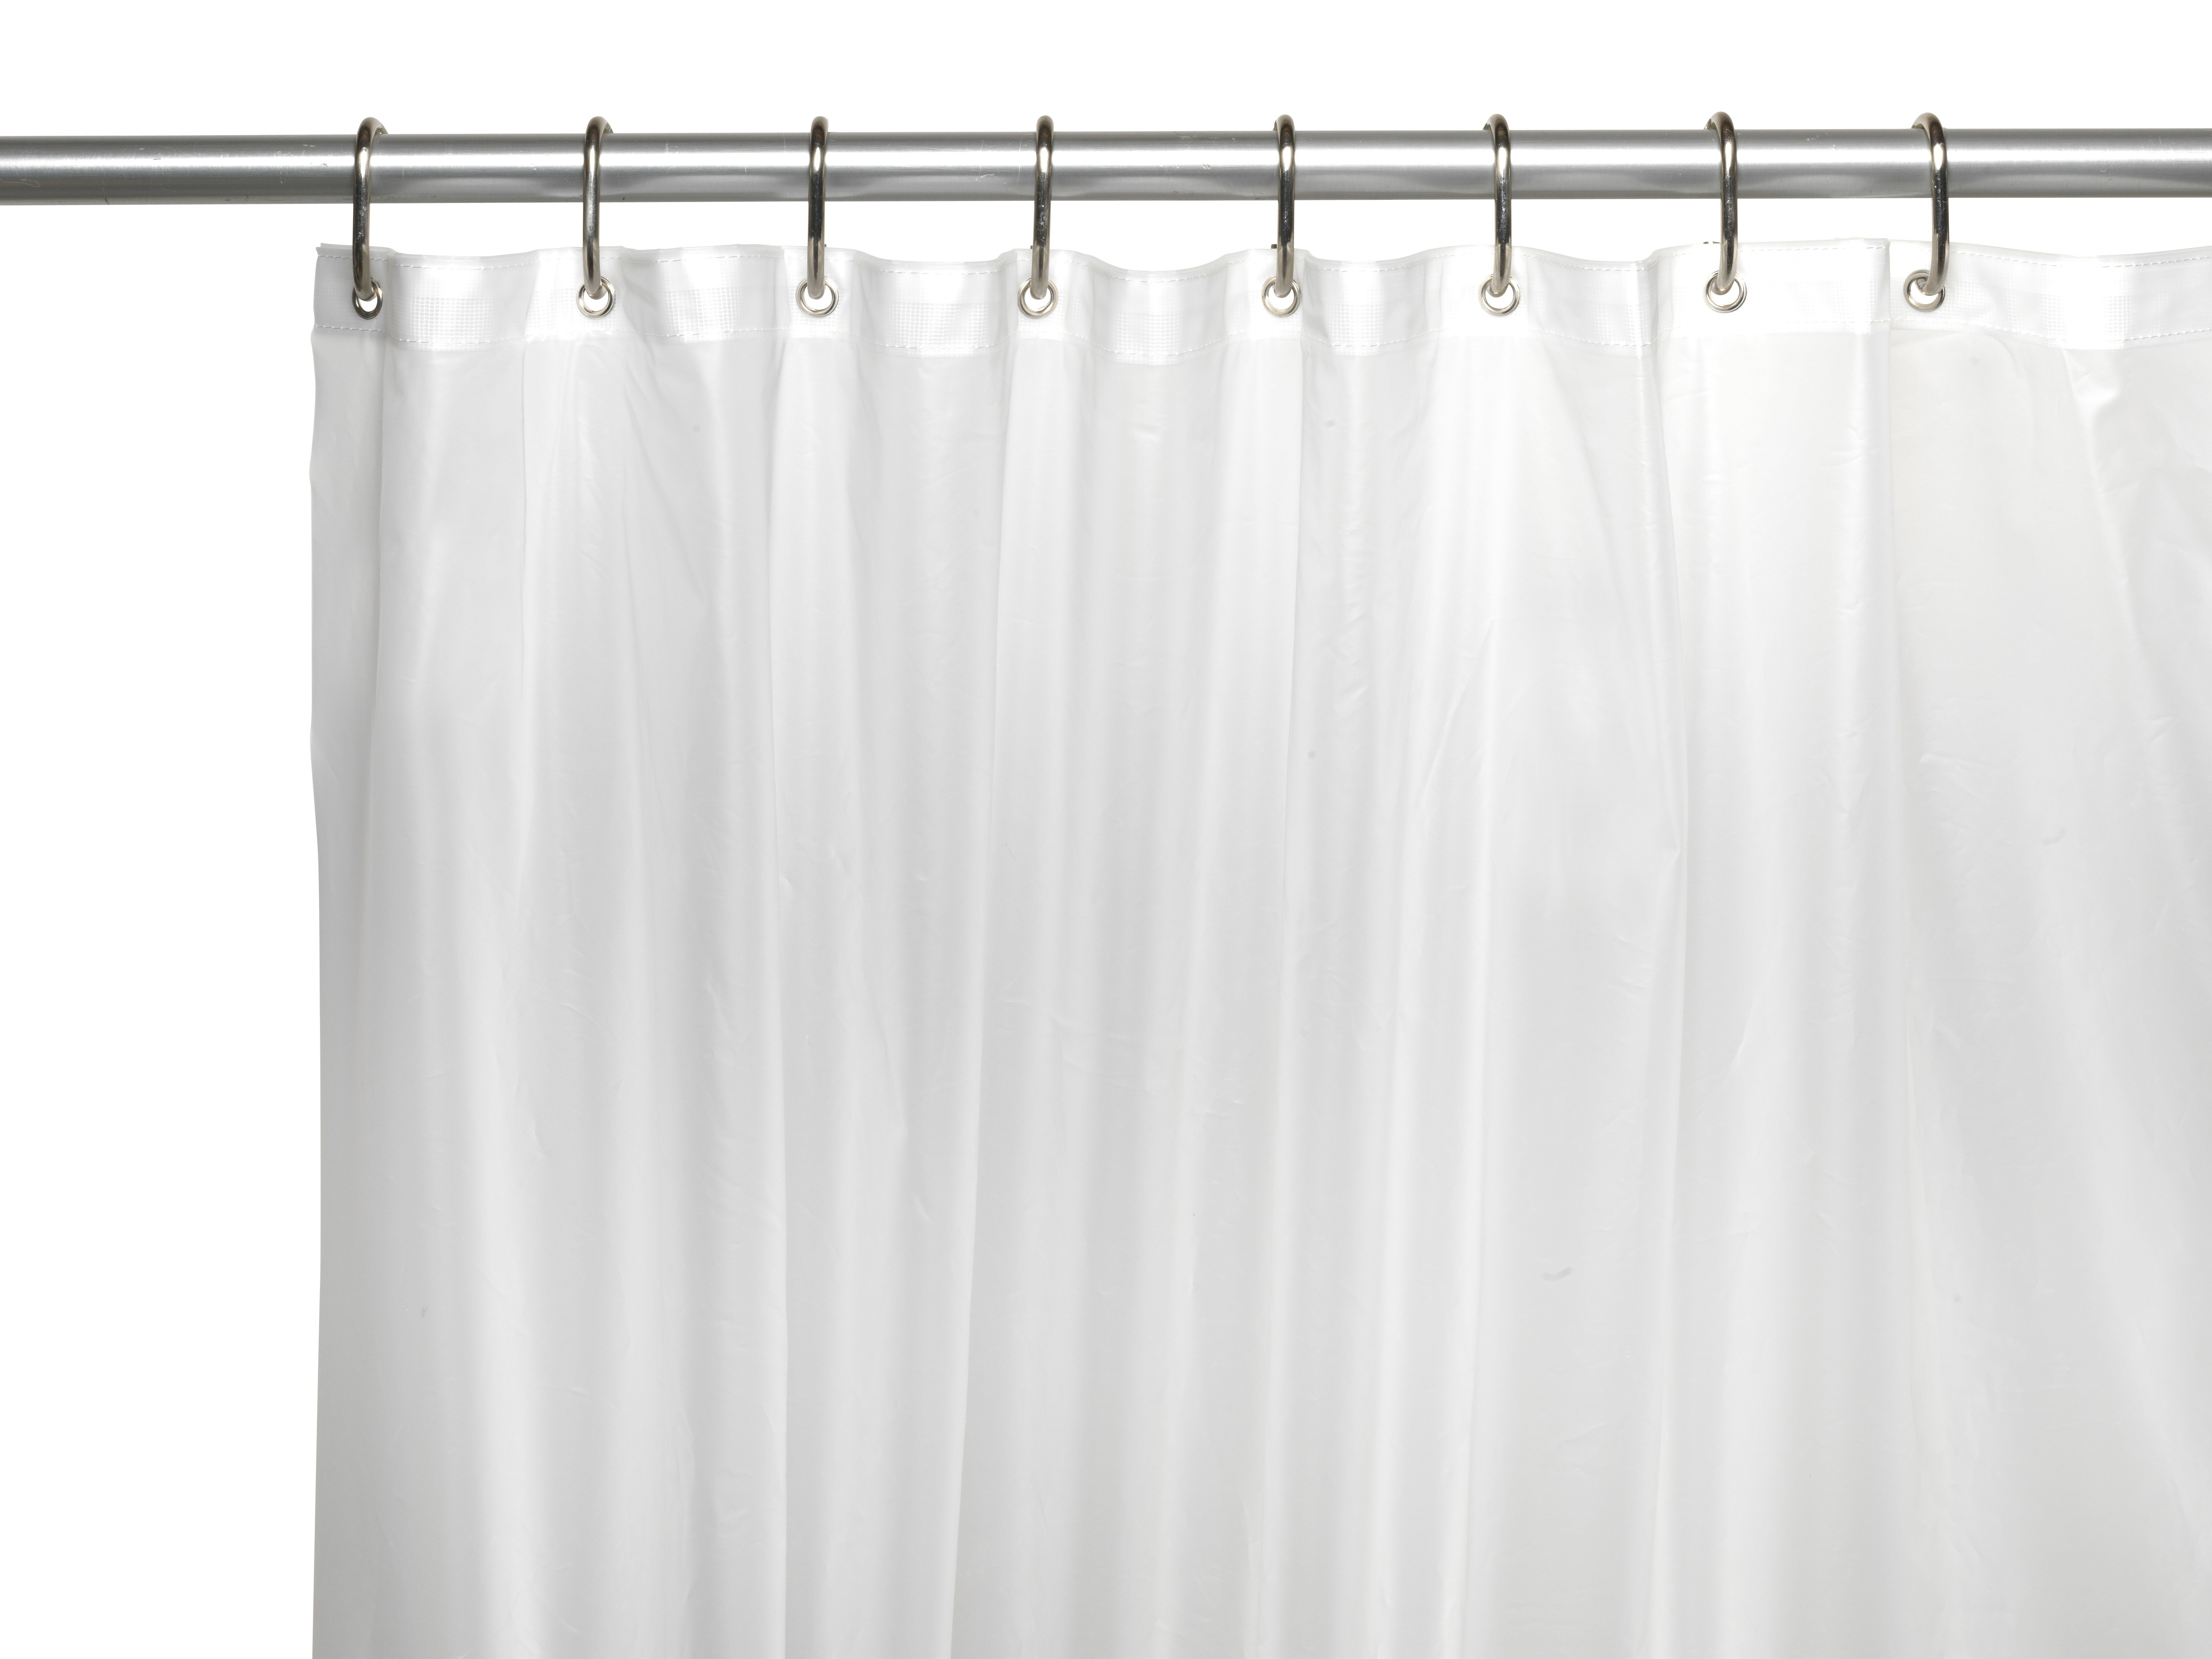 Ben And Jonah Clean Home PEVA Shower Curtain Liner Reviews